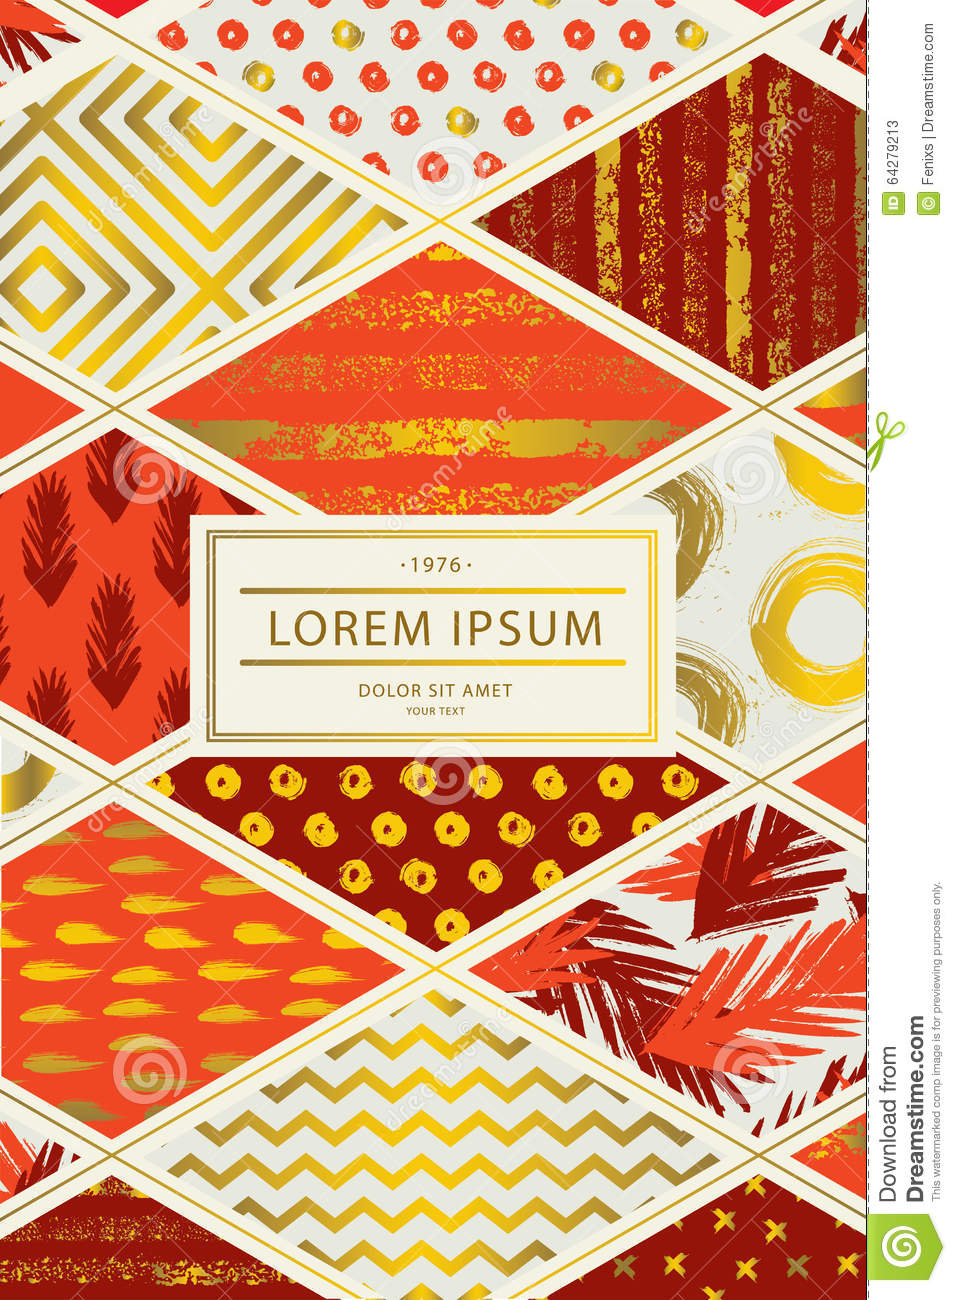 Patchwork Book Cover Pattern : Colorful cover in patchwork style red shades with gold